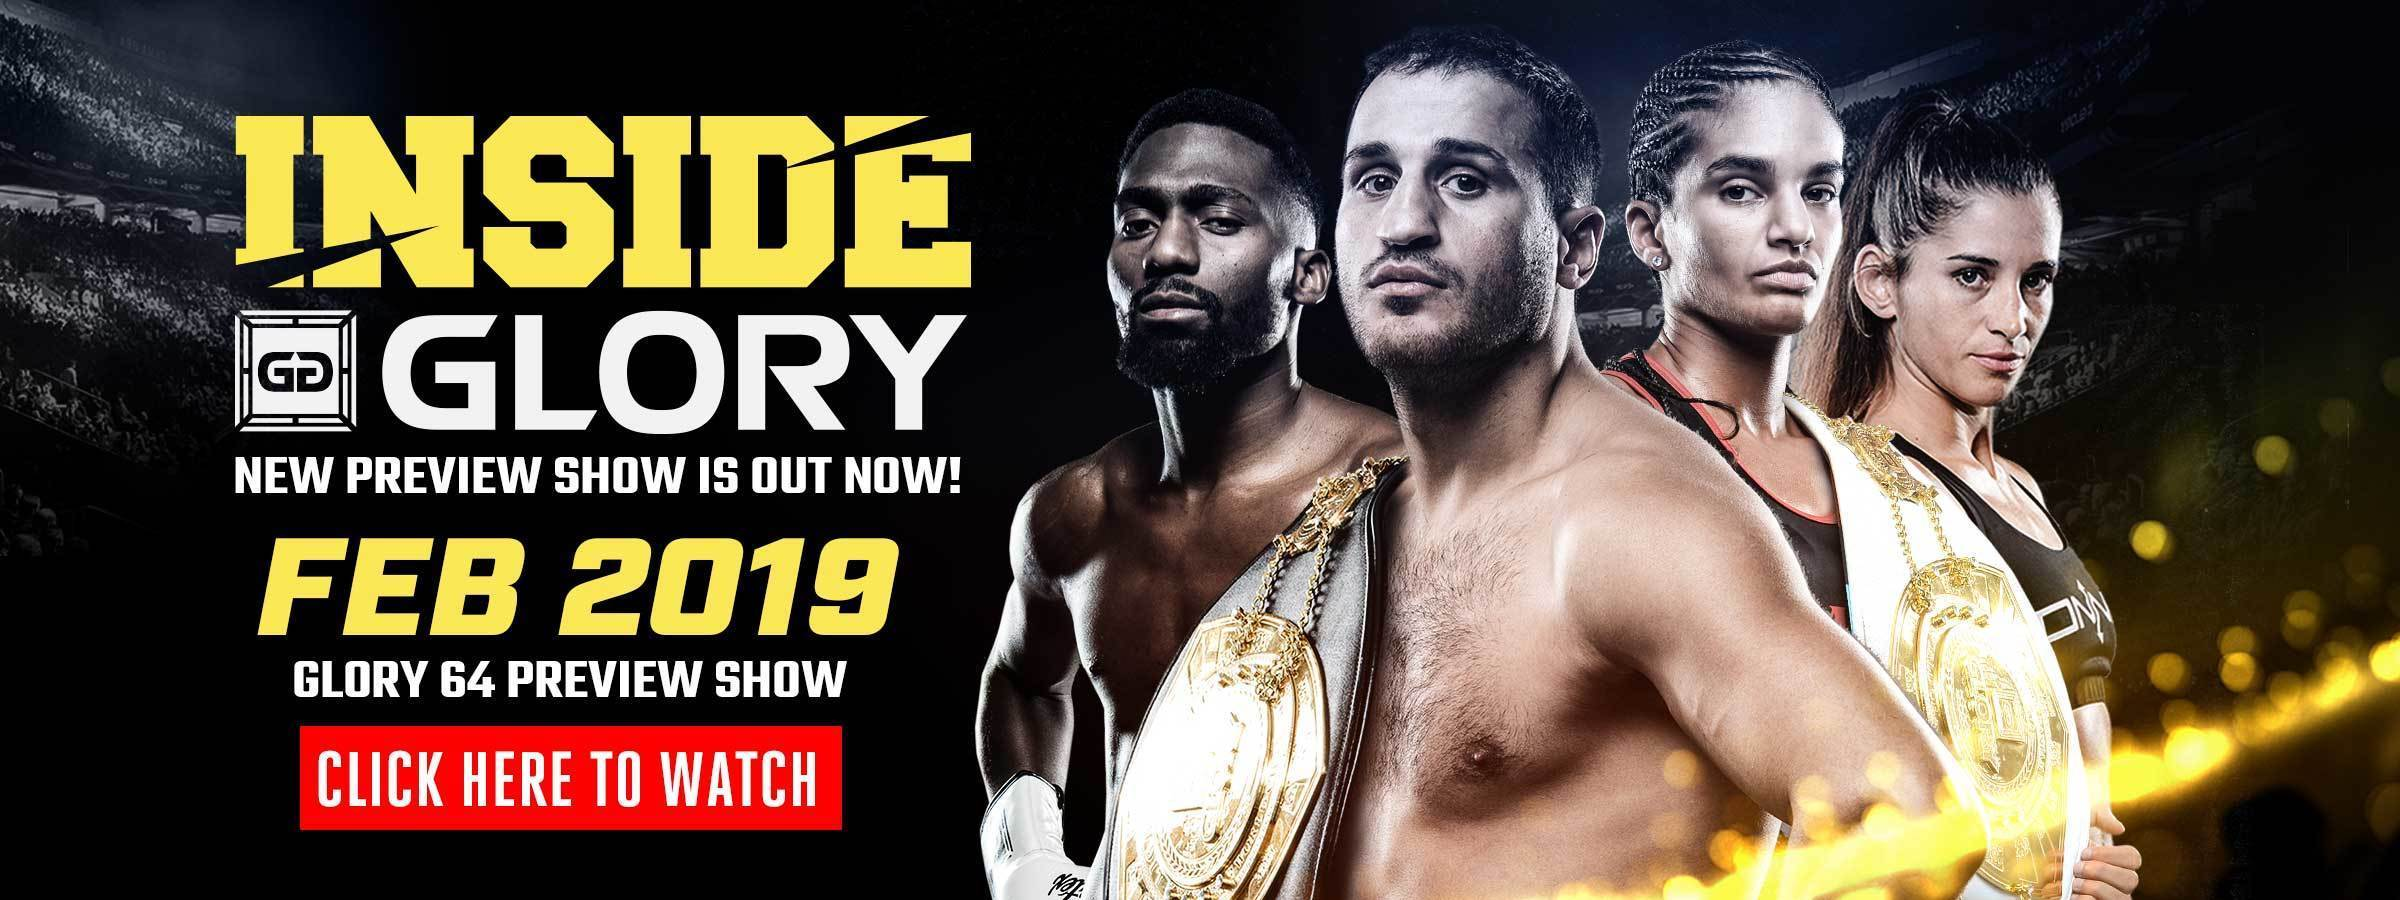 Inside GLORY - Feb 2019